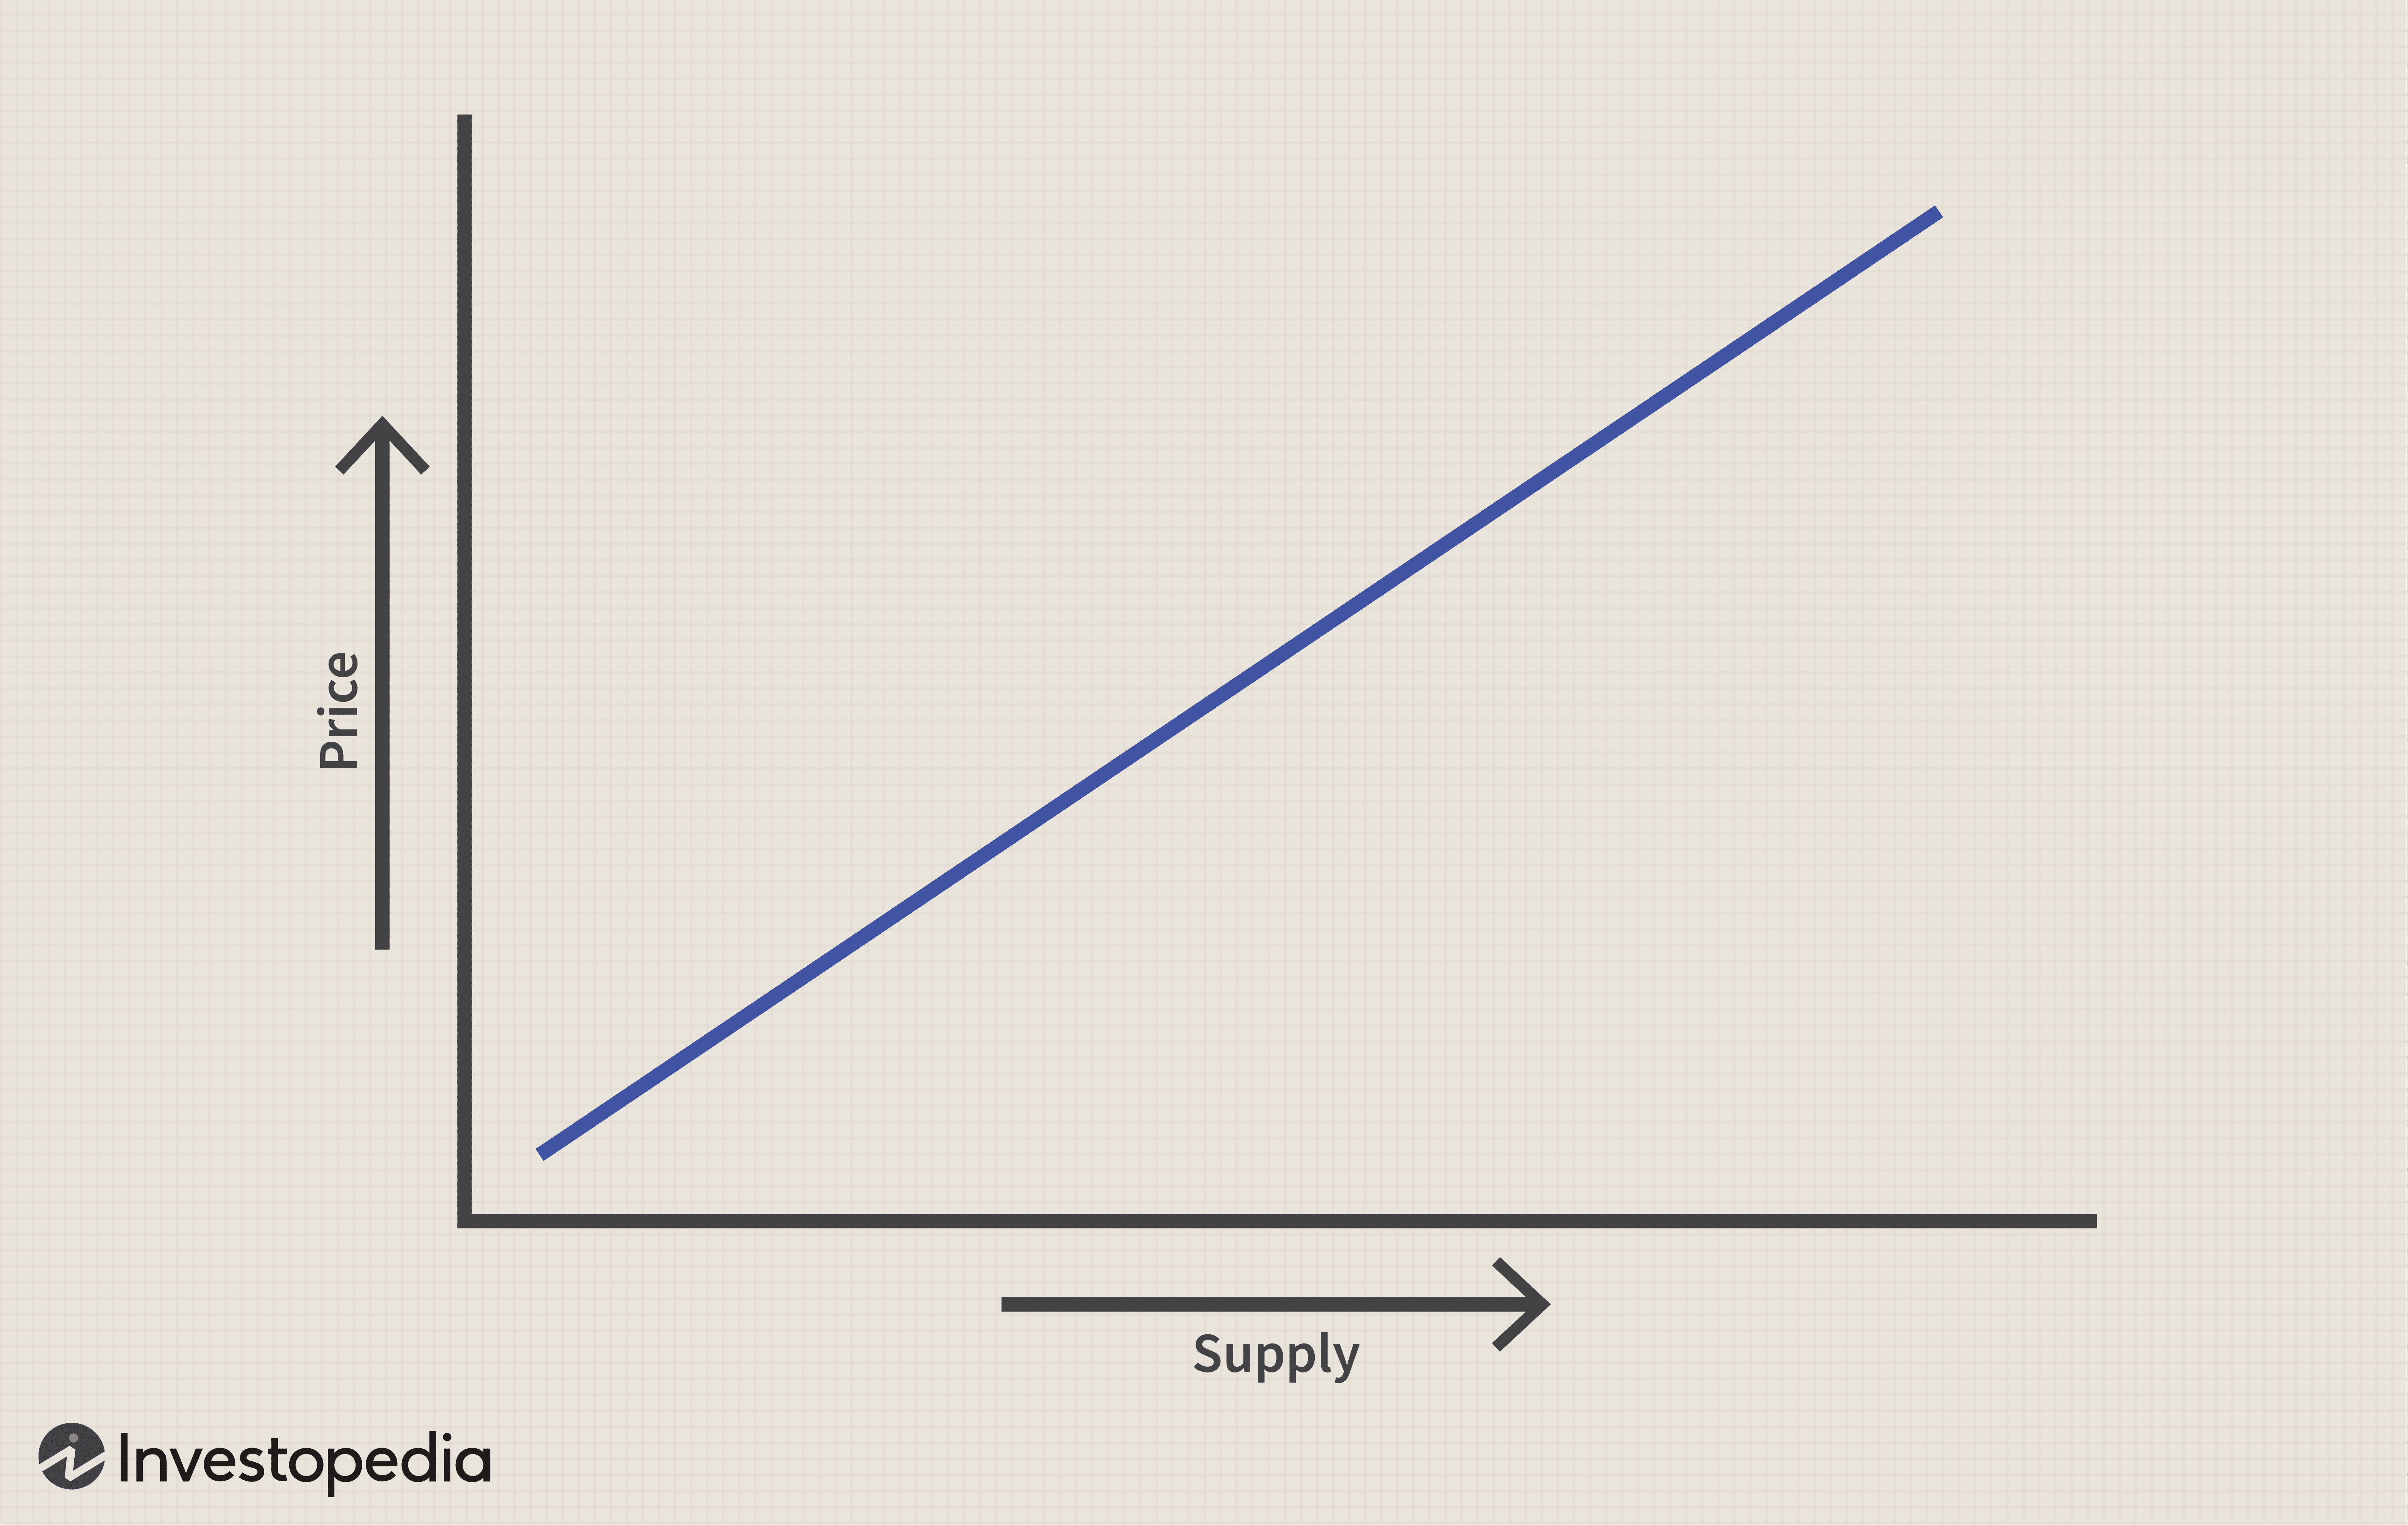 Introduction To Supply And Demand